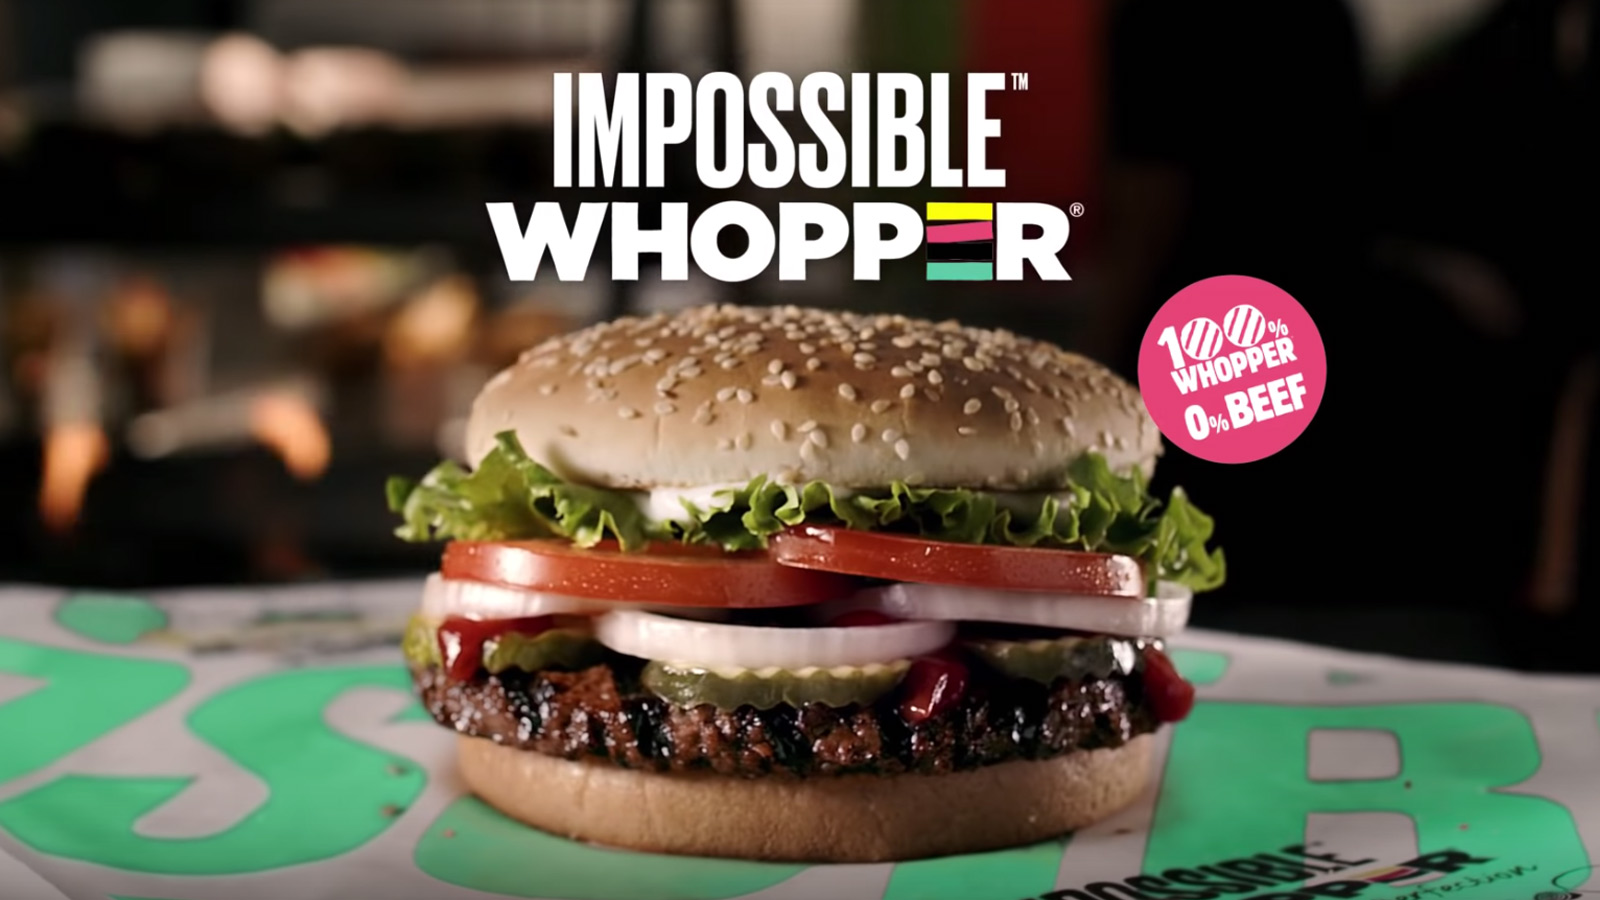 Imossible Whopper